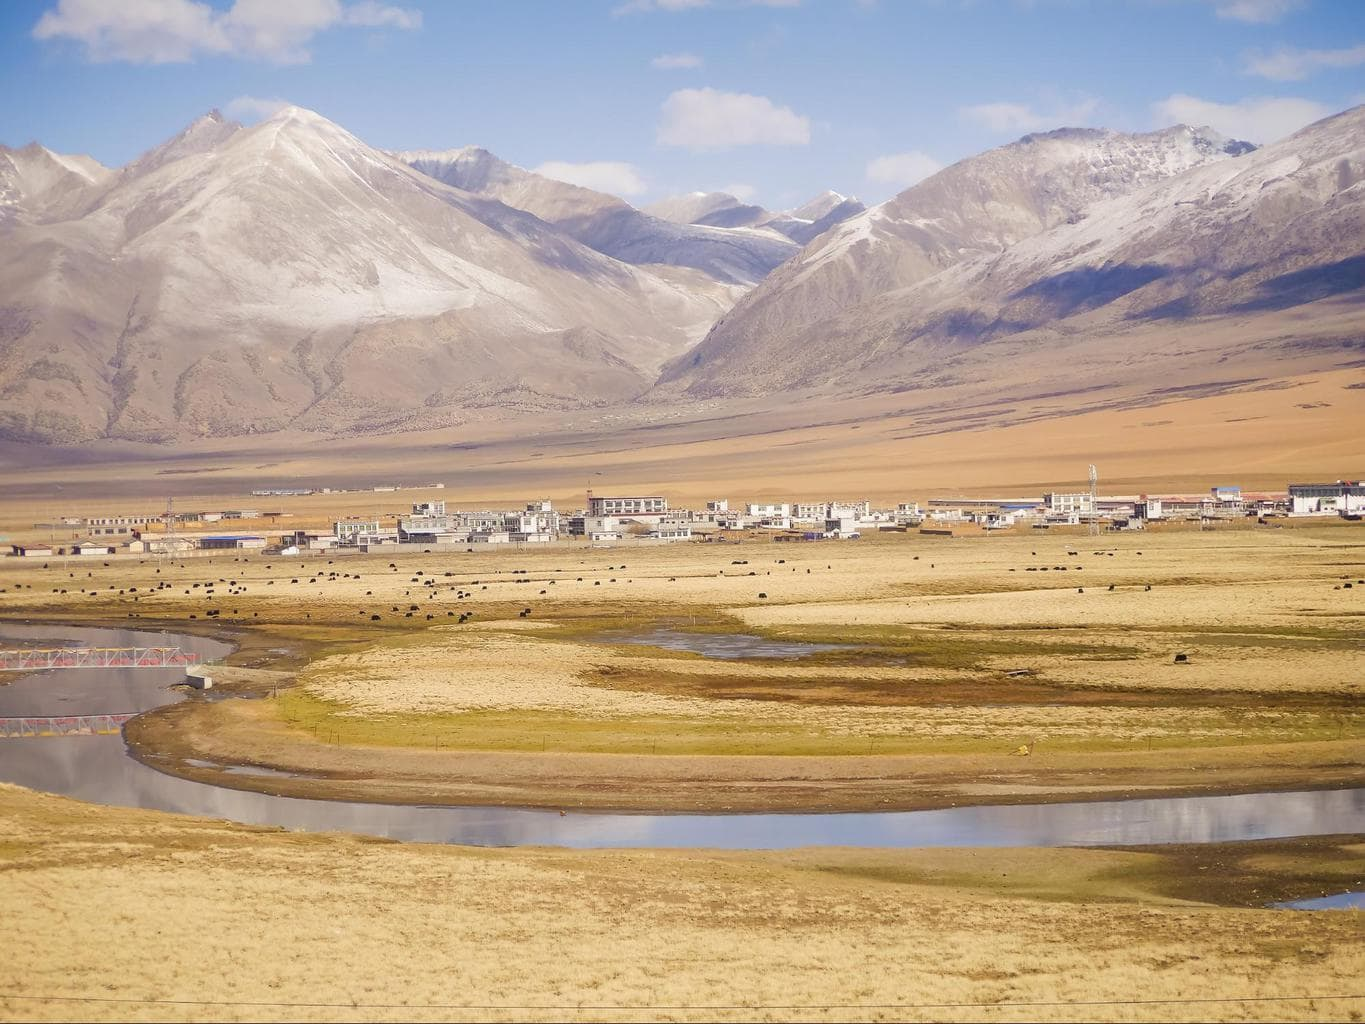 Views from the train to Lhasa